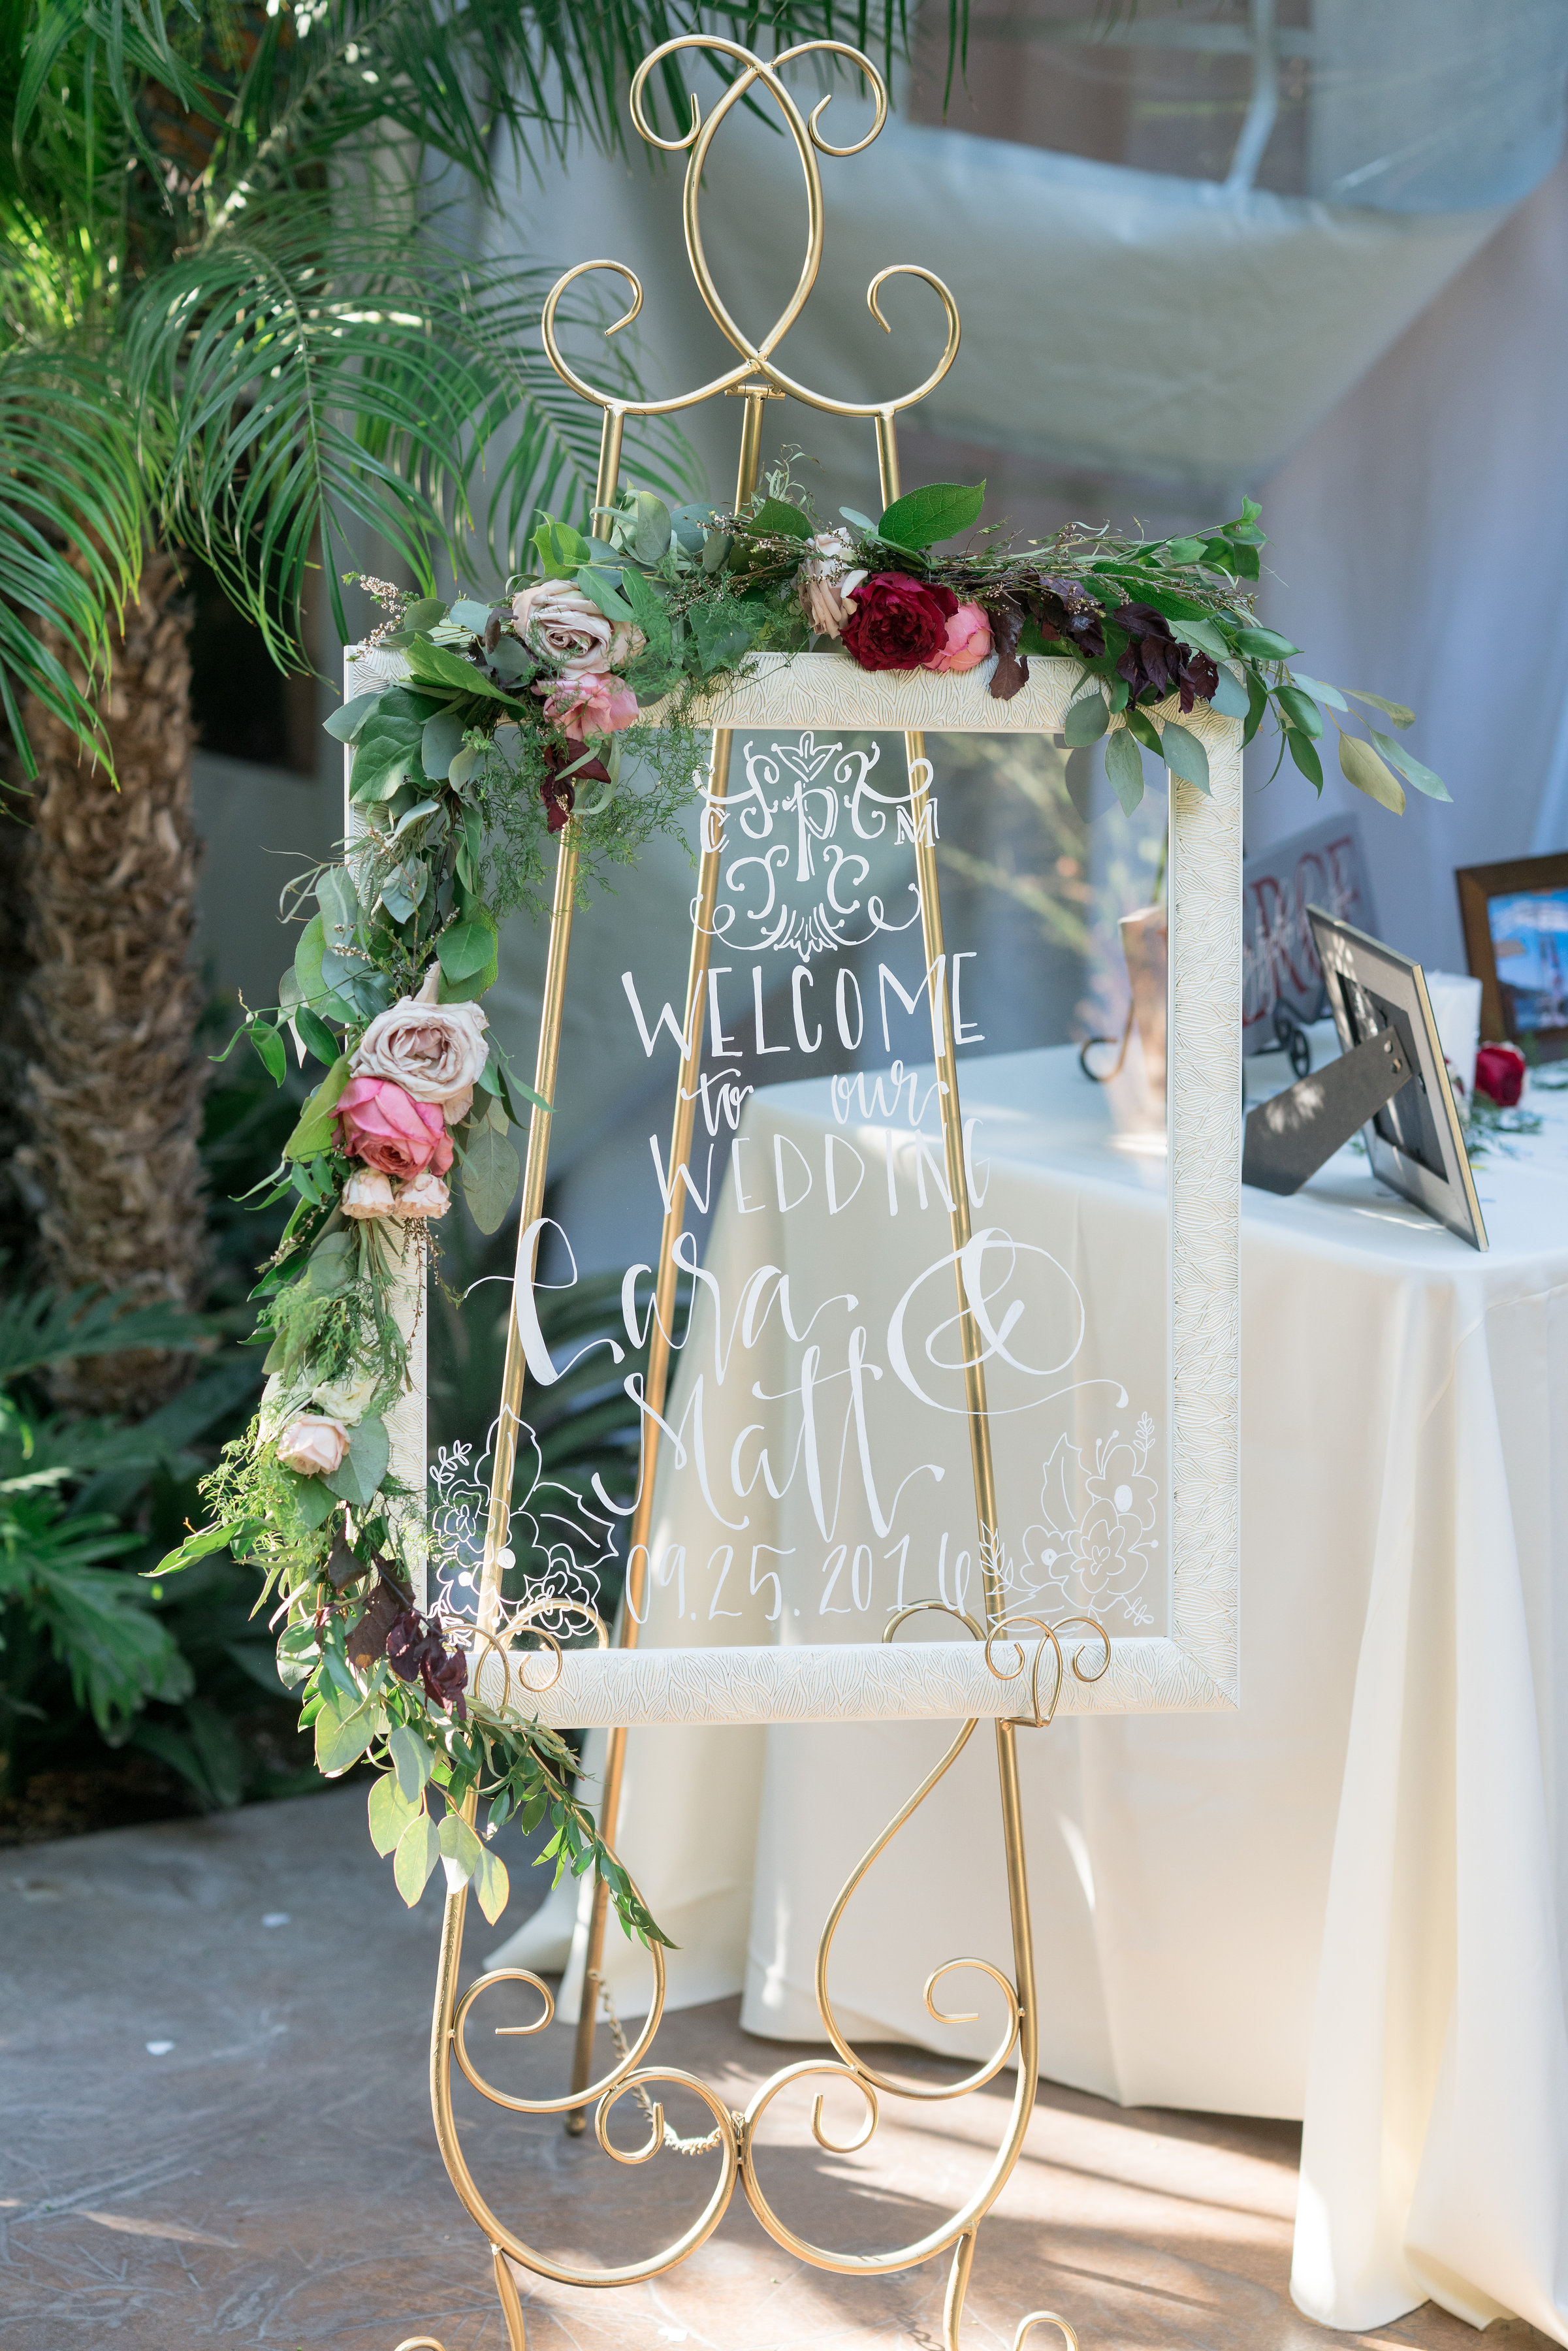 Wedding welcome sign on acrylic with fall color wedding flowers